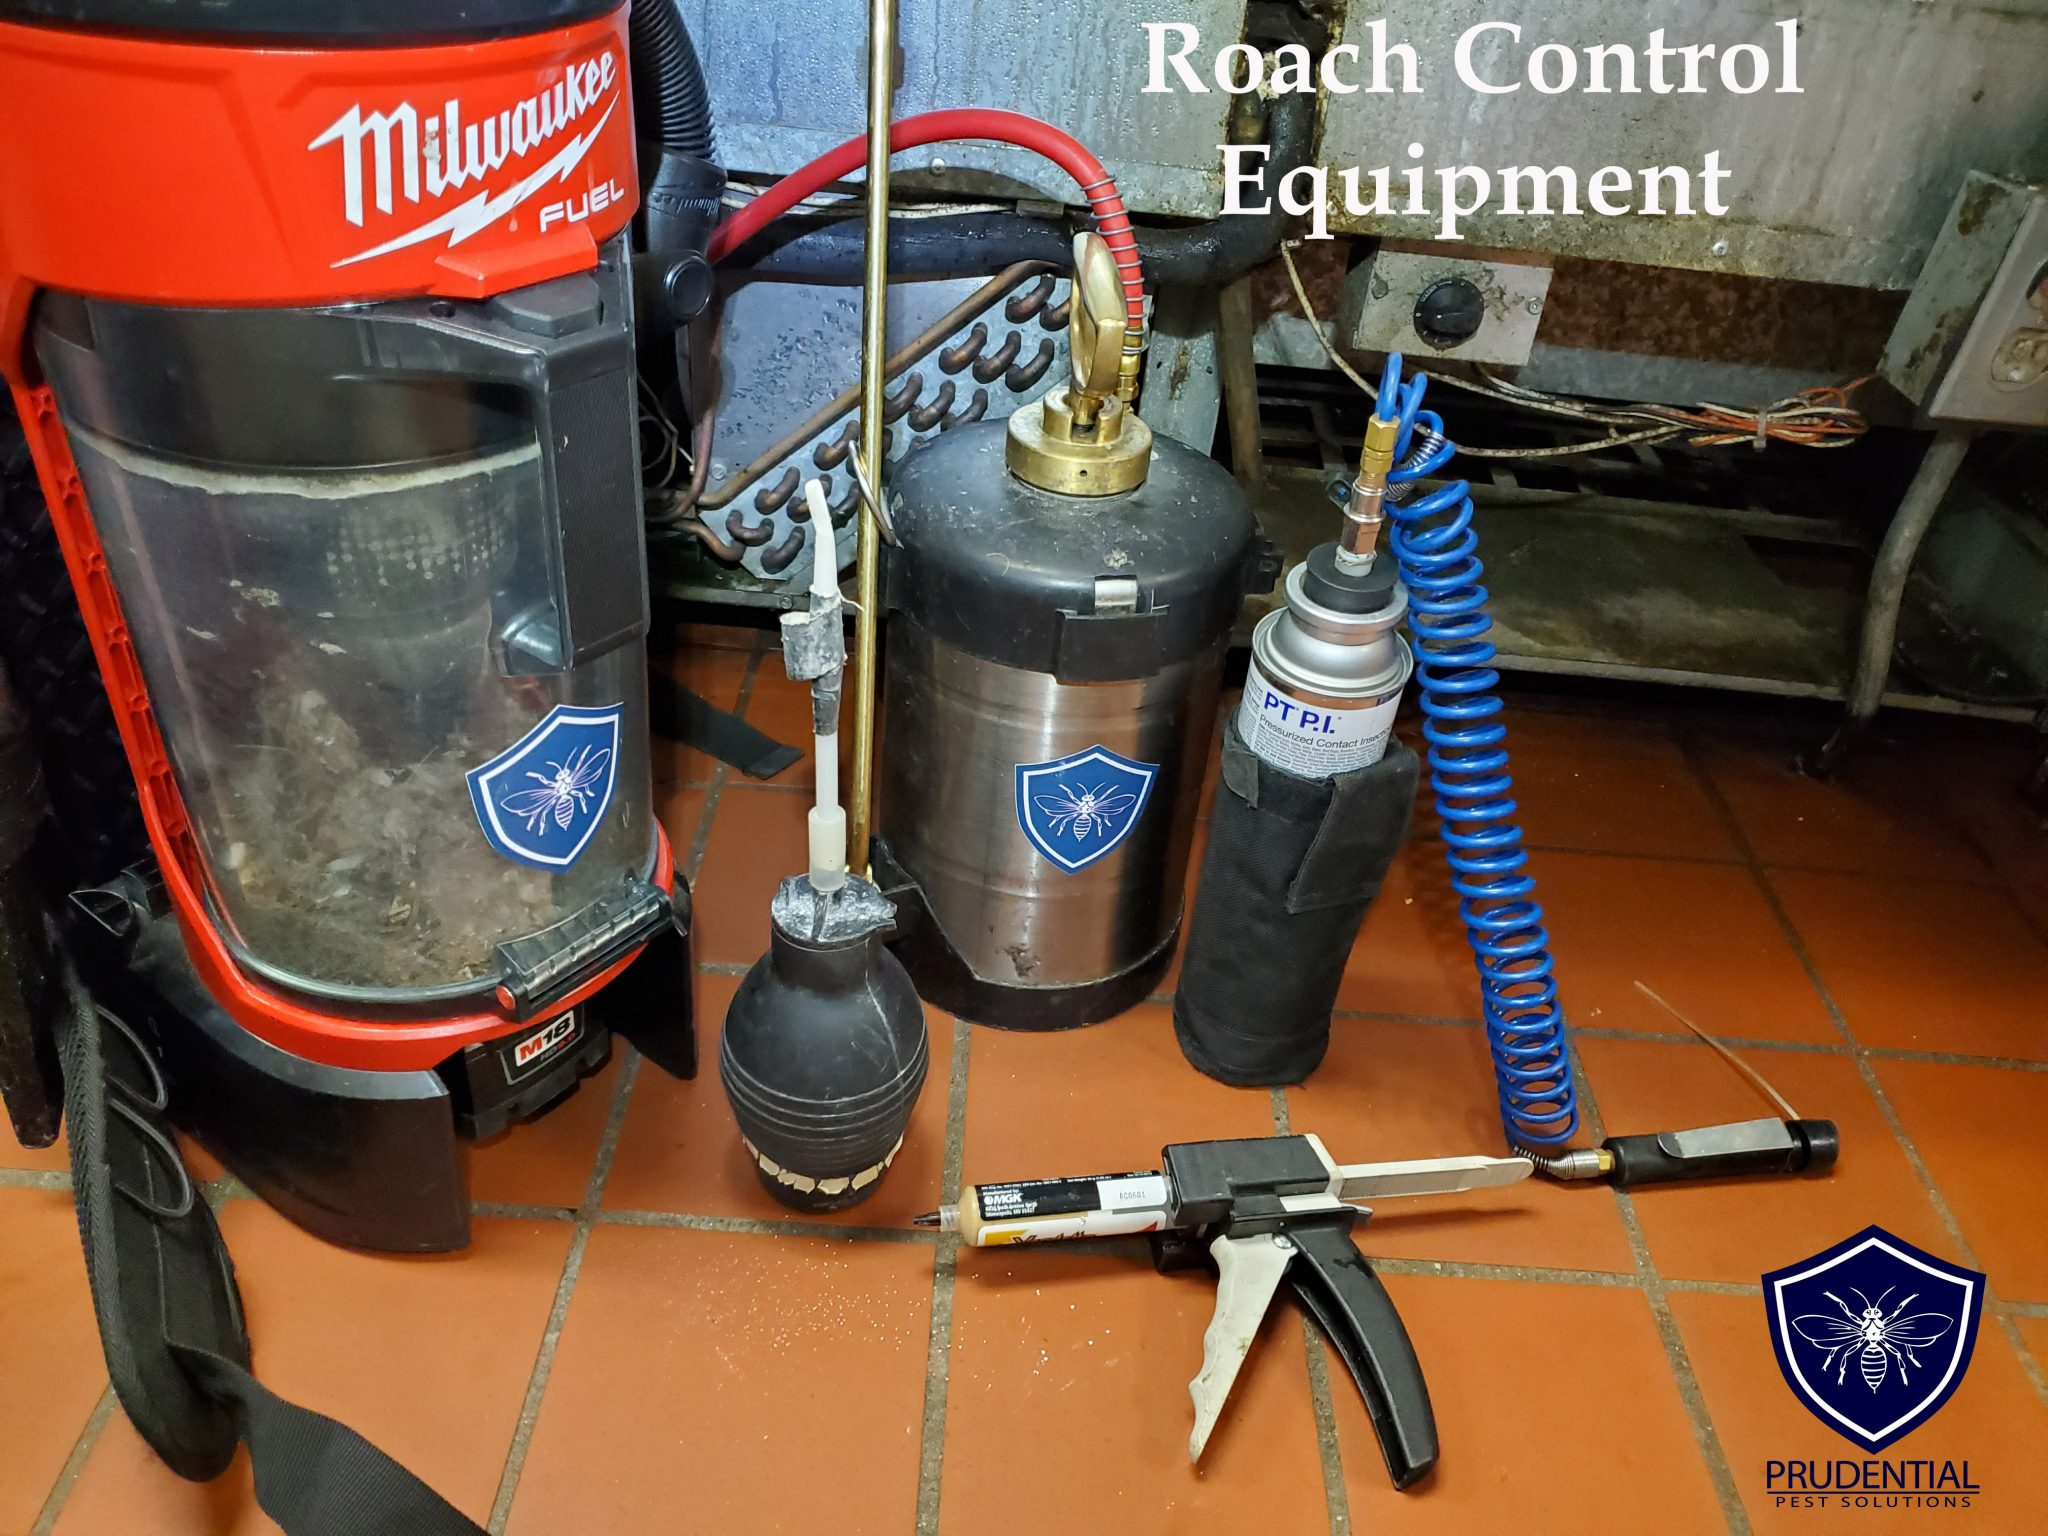 Cockroach Control Equipment